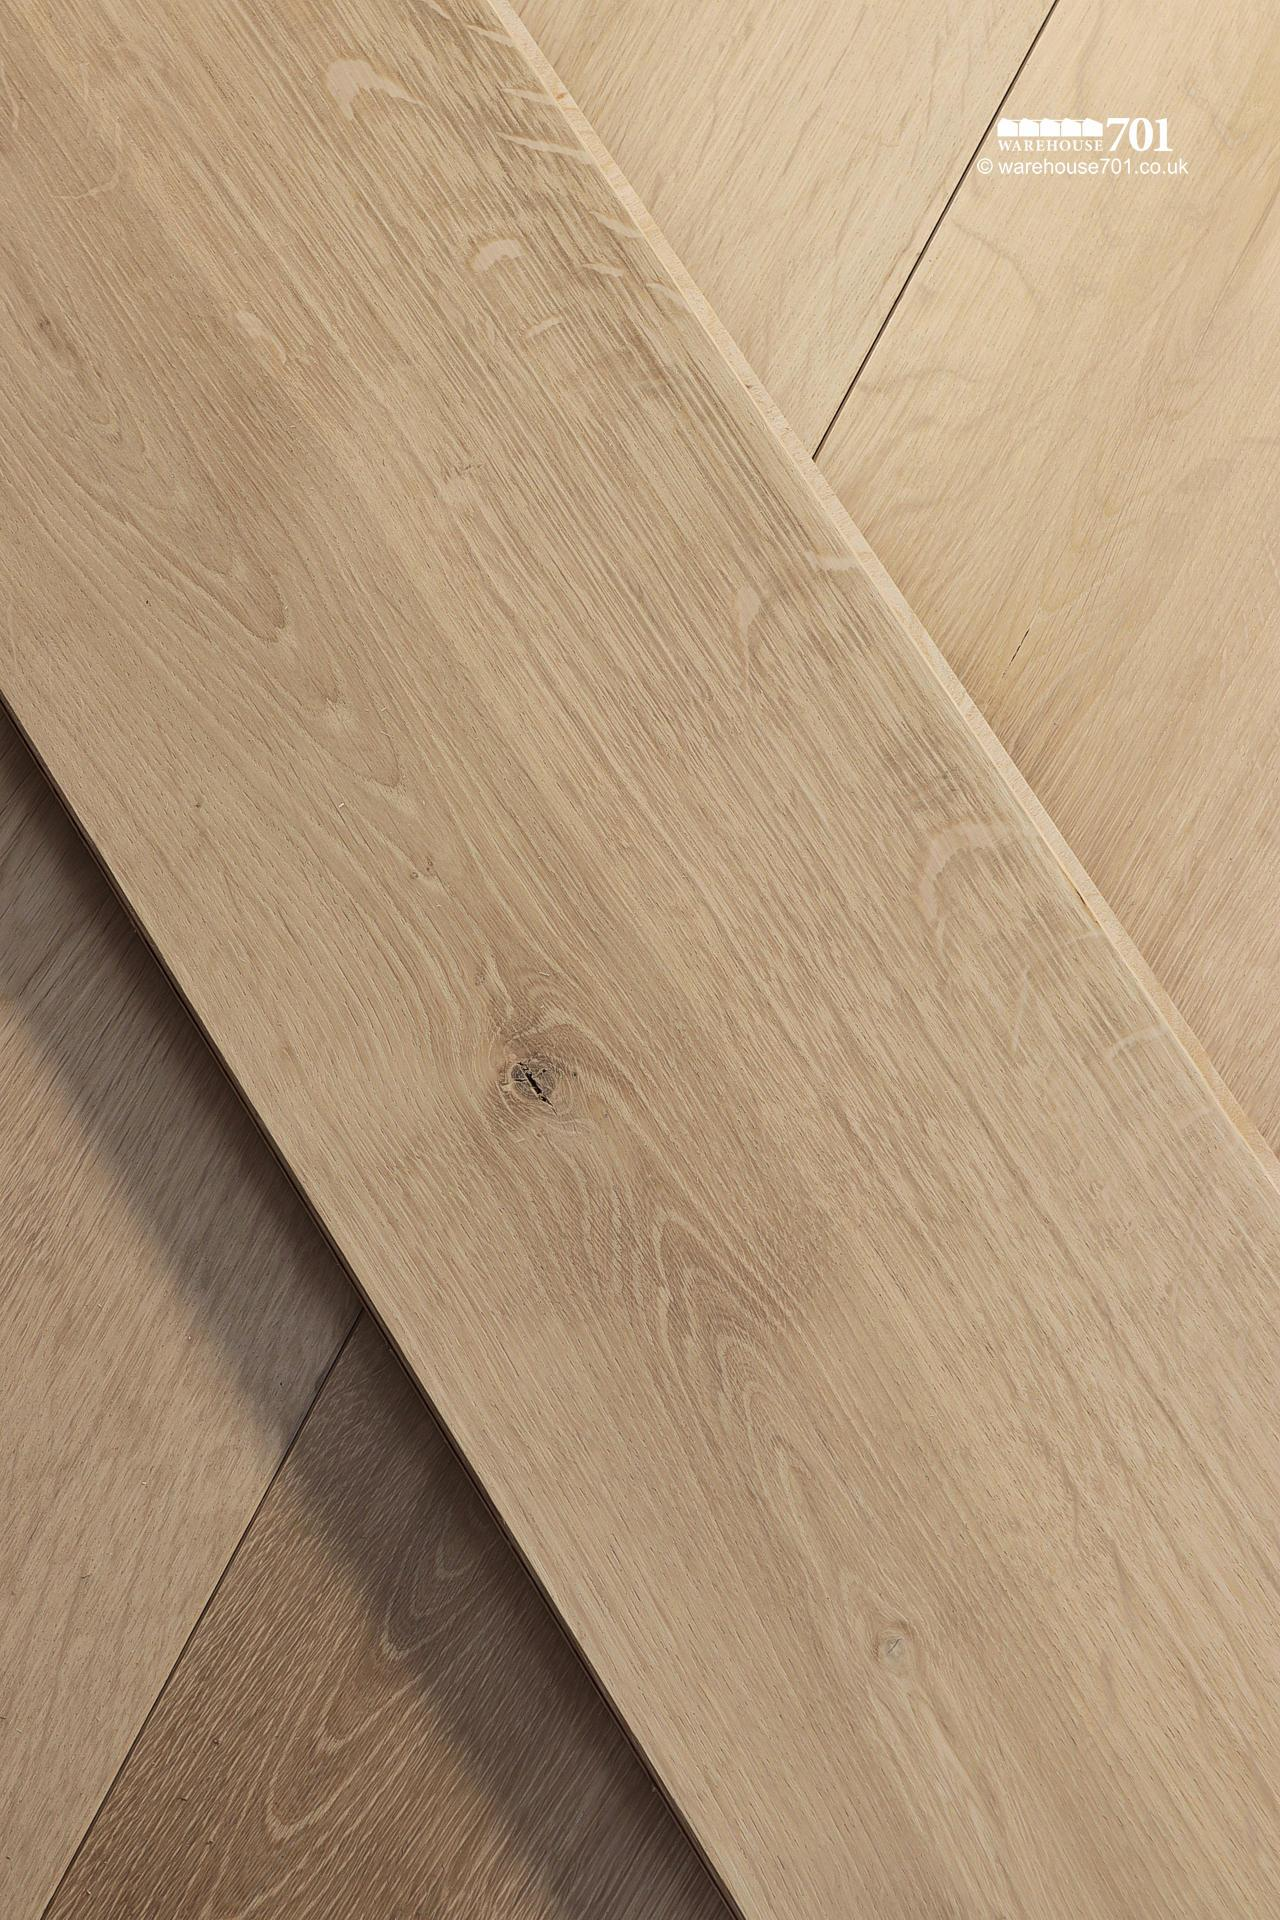 New 'Wessex' Engineered Natural Oak Wood Flooring #4